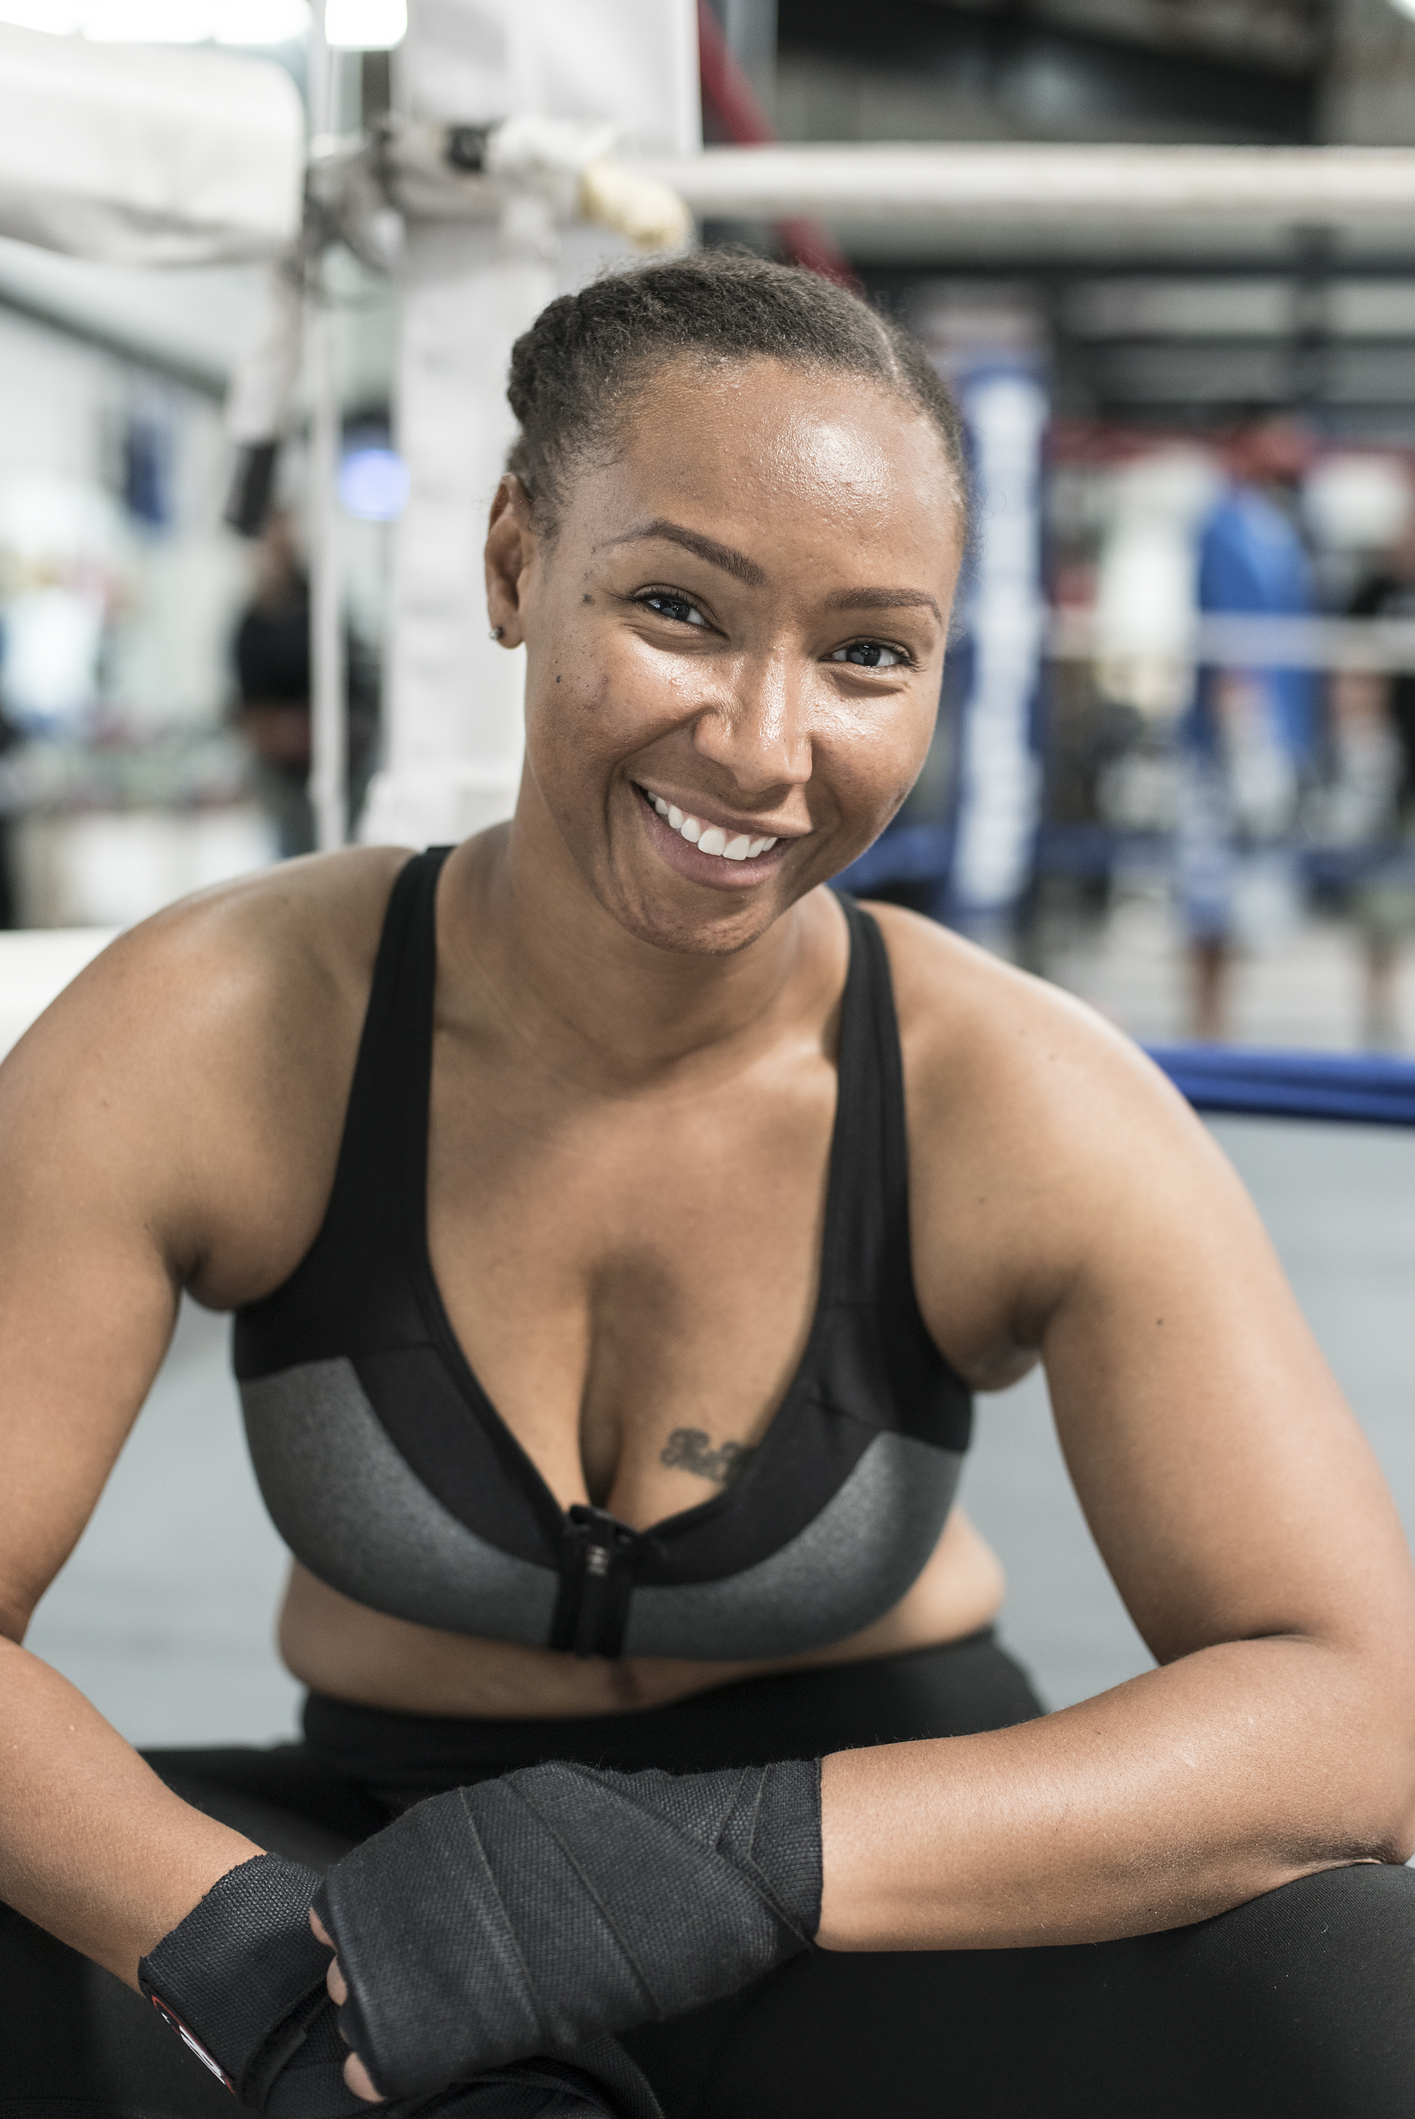 Black woman with wrapped hands in gymnasium